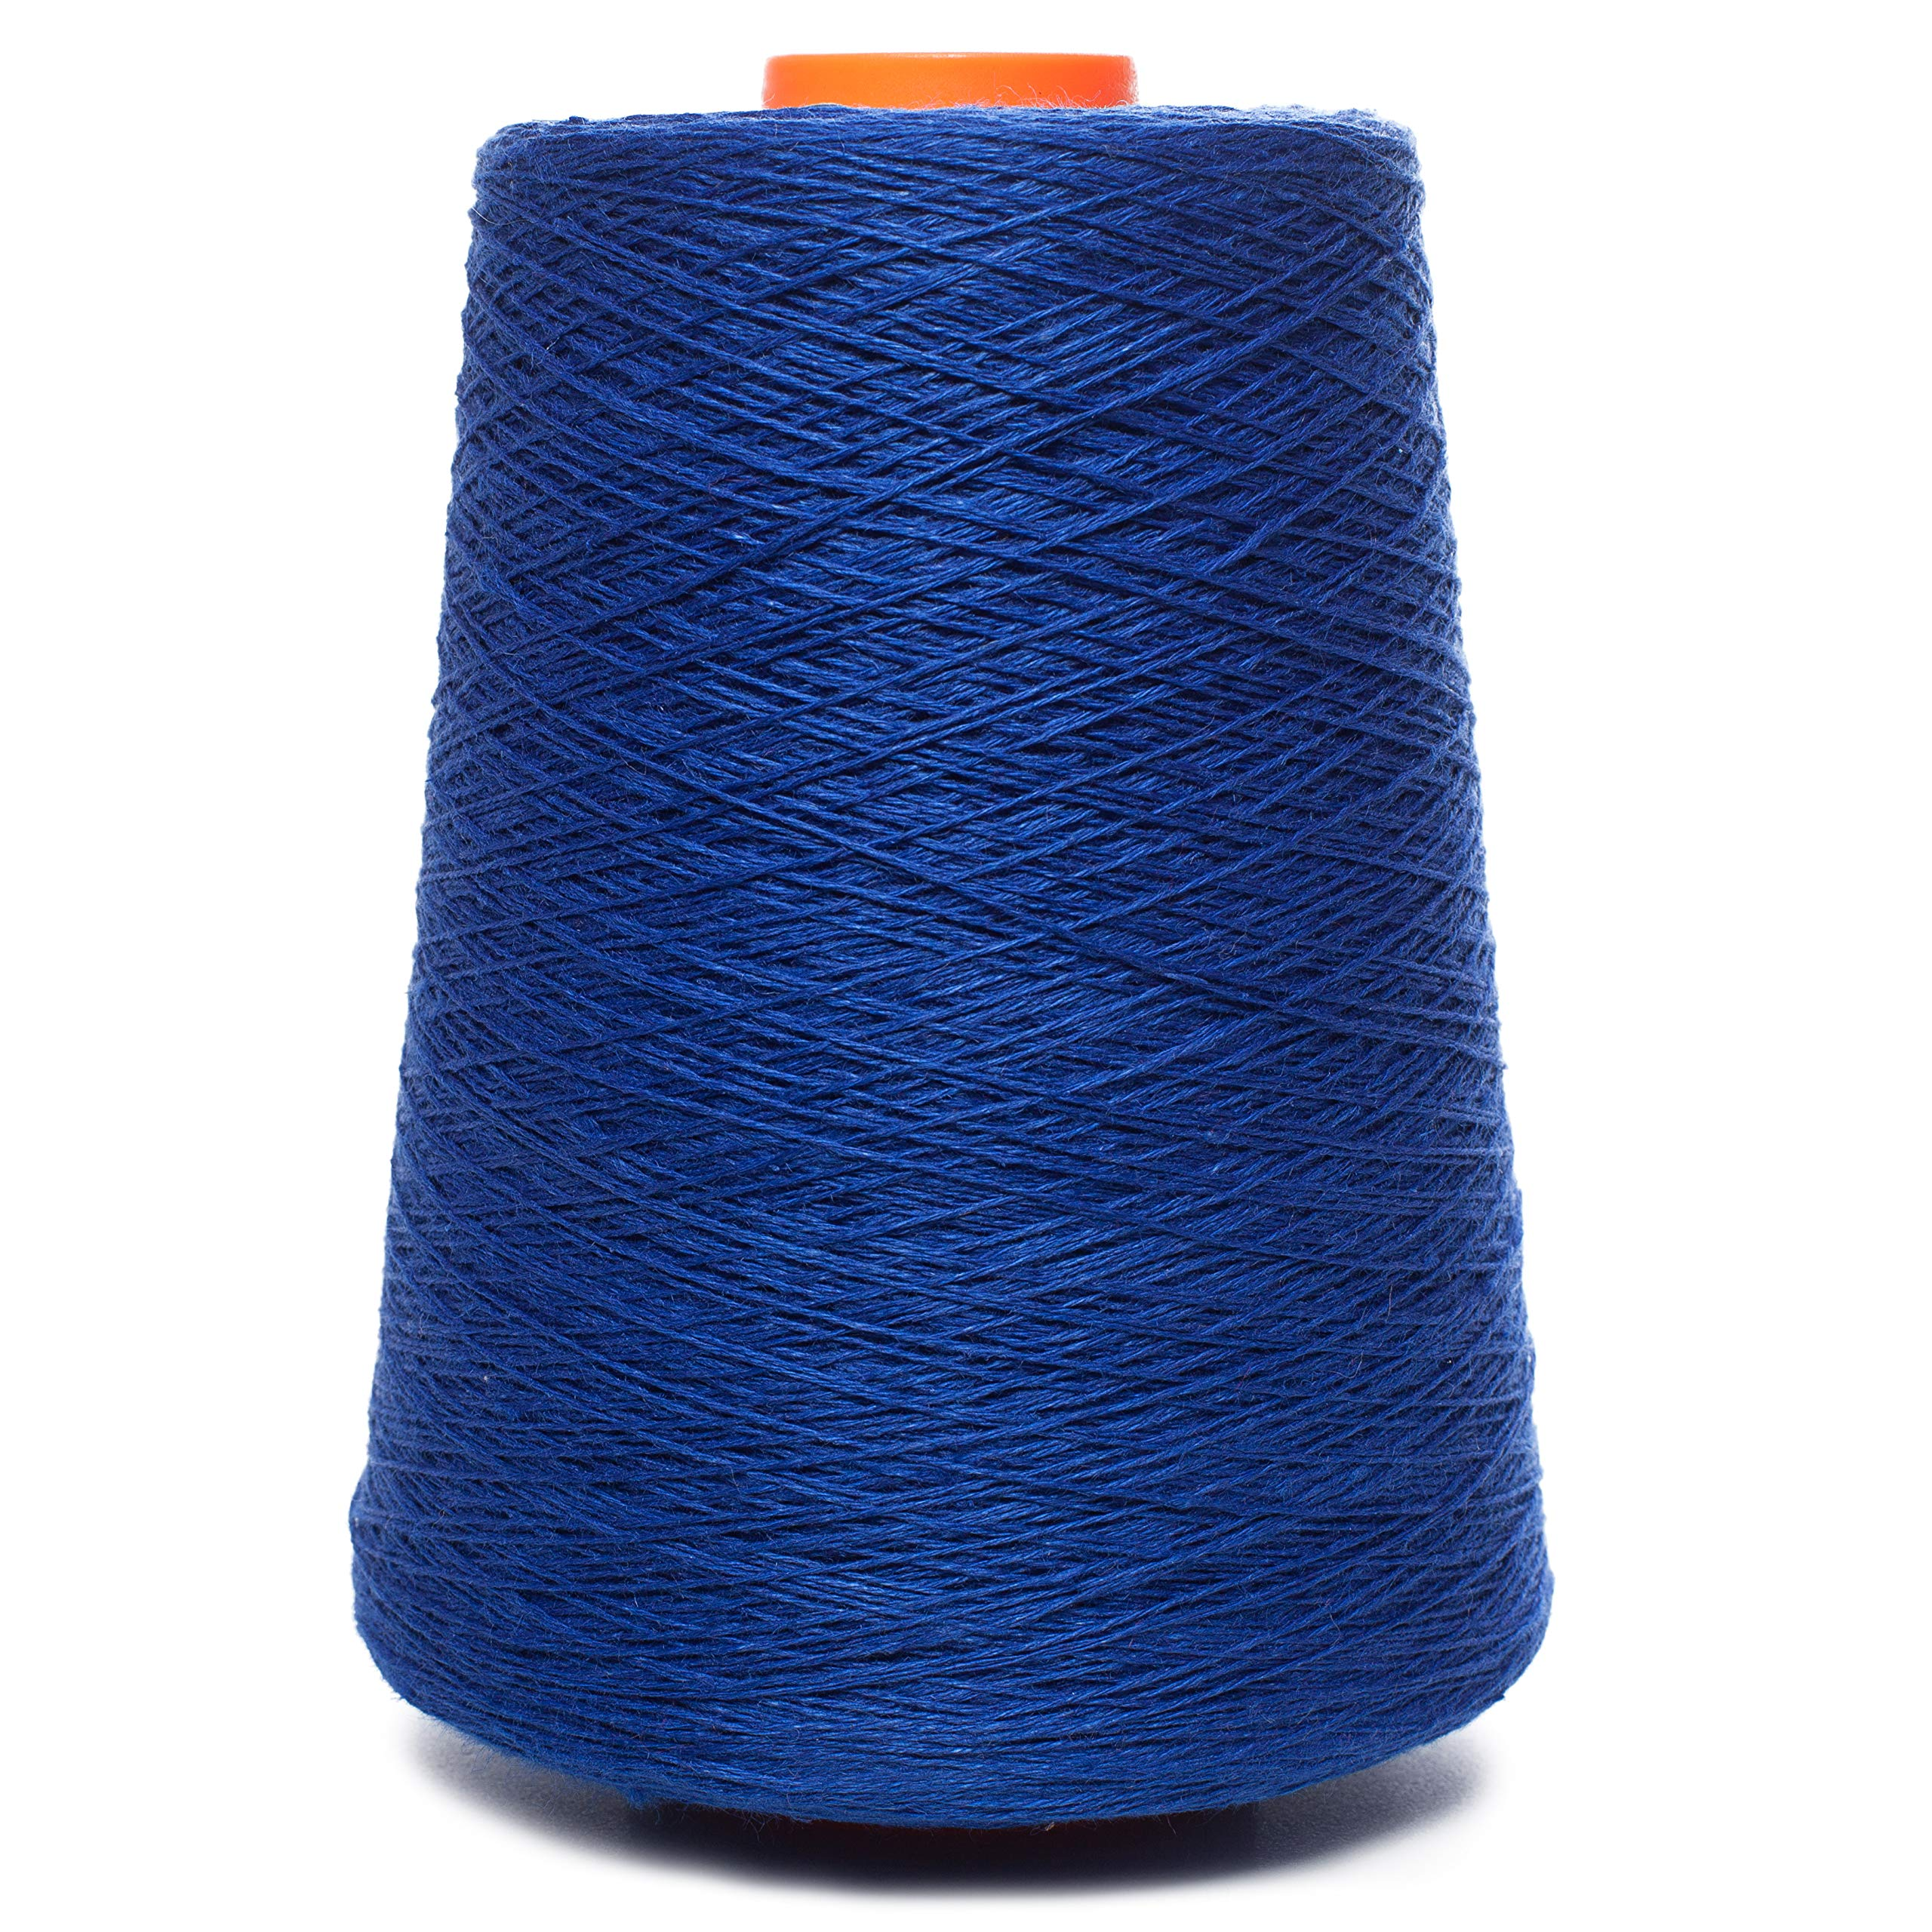 Linen Yarn Cone - 100% Flax Linen - 1 LBS - Ink Blue Color - 3 PLY - Sewing Weaving Crochet Embroidering - 3.000 Yards